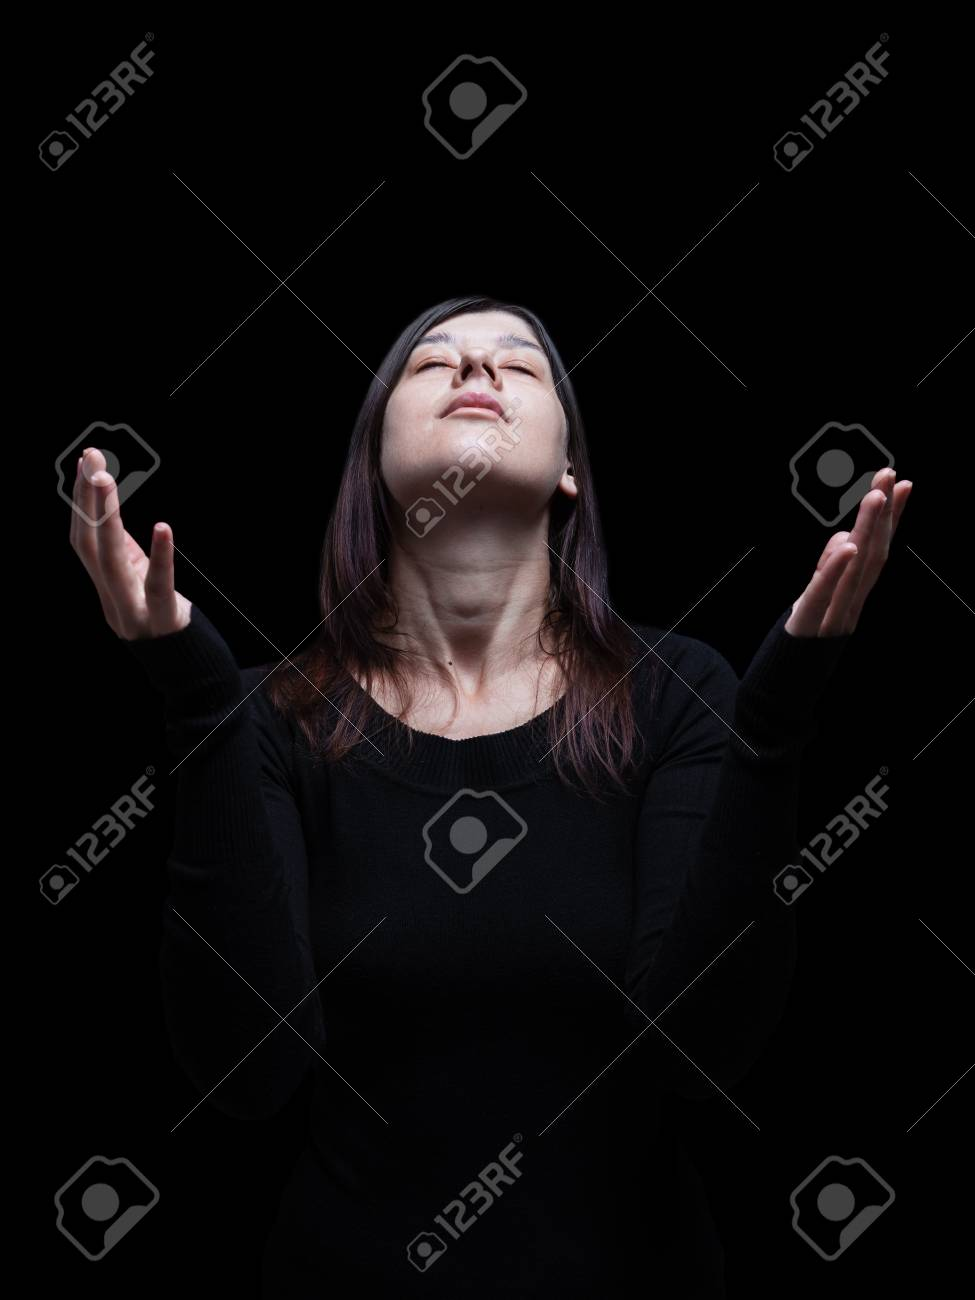 Mourning woman praying, with arms outstretched in worship to